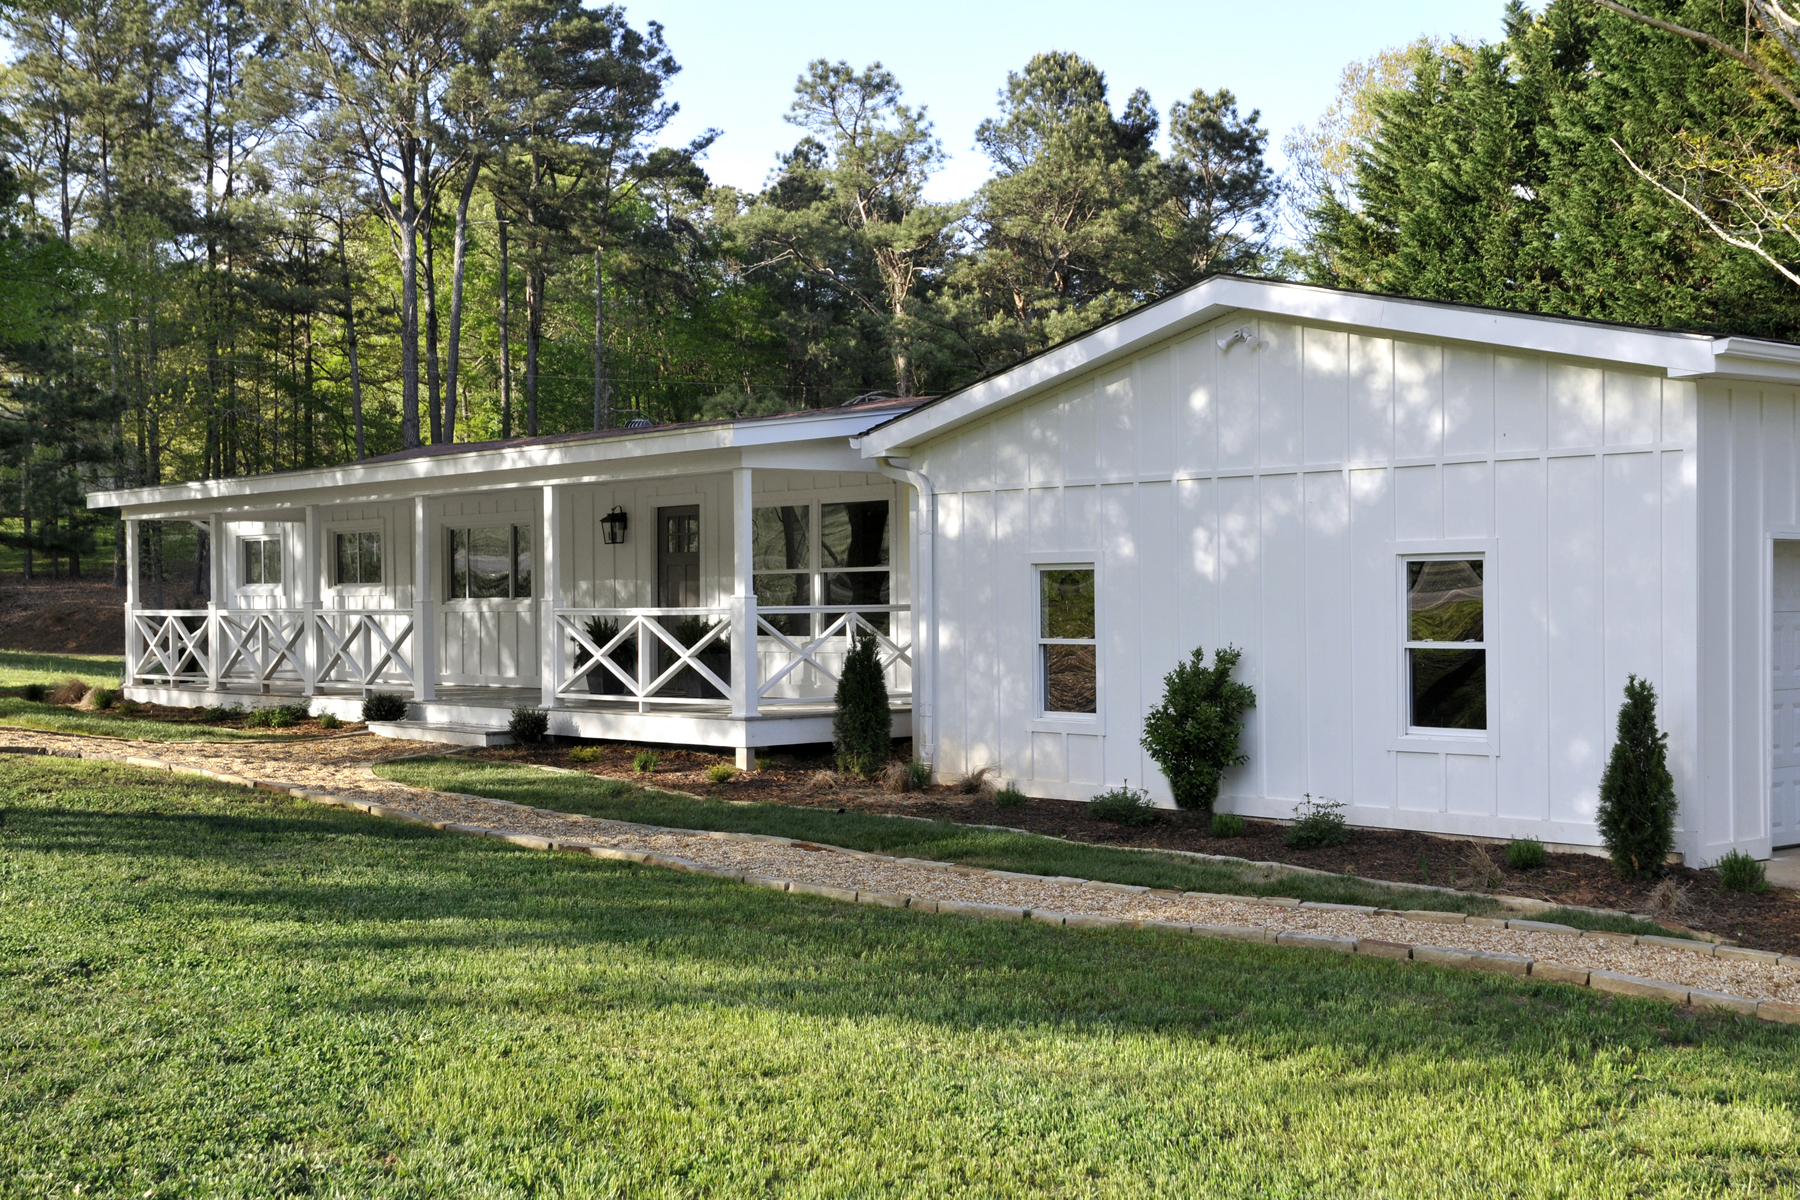 Single Family Home for Rent at Updated Farm House On 3 Acres 888 AJ Land Road Canton, Georgia 30115 United States